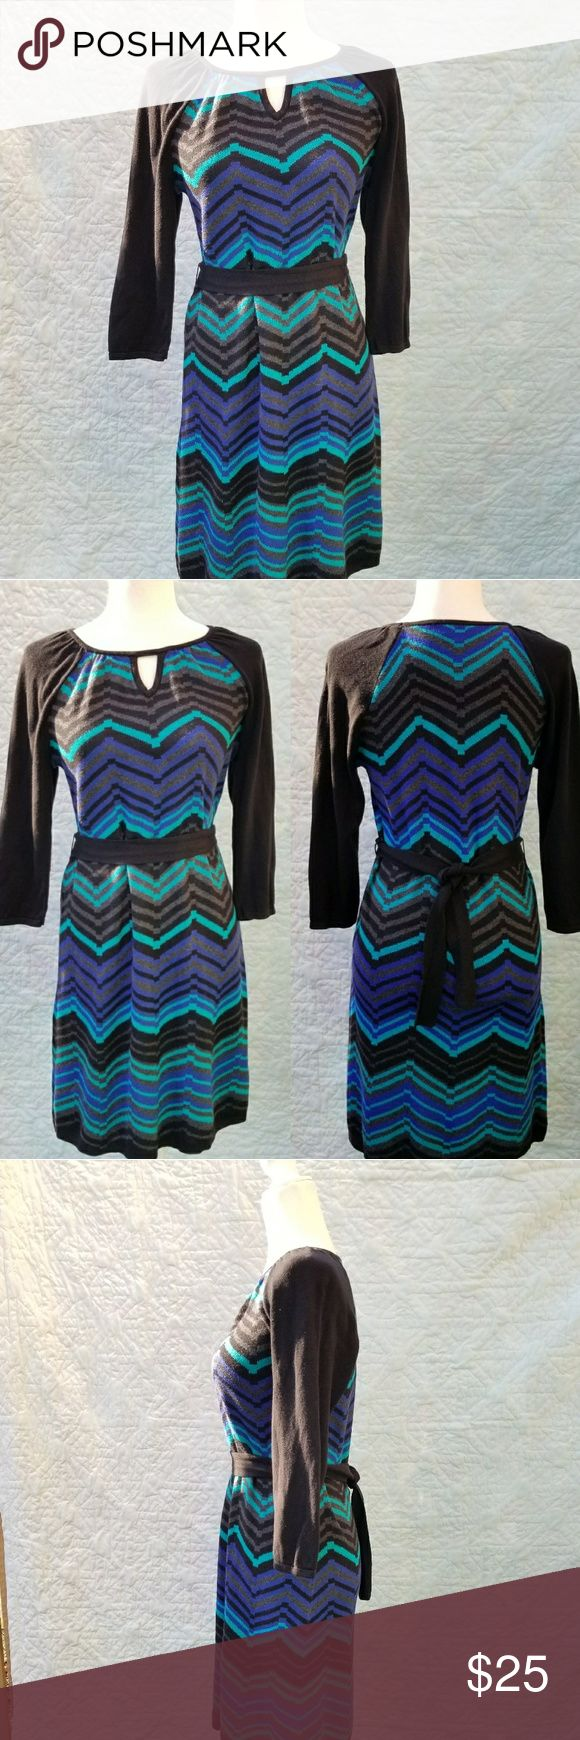 "NWOT Spense Petite Sweater Dress Chevron Pattern Spense Petite Sweater Dress in Blue/Teal Chevron print  3/4 sleeves  Stretchy fabric  Bust: 17 1/2"" Waist: 17"" Length: 36 1/2""  New, never worn! Spense Dresses"